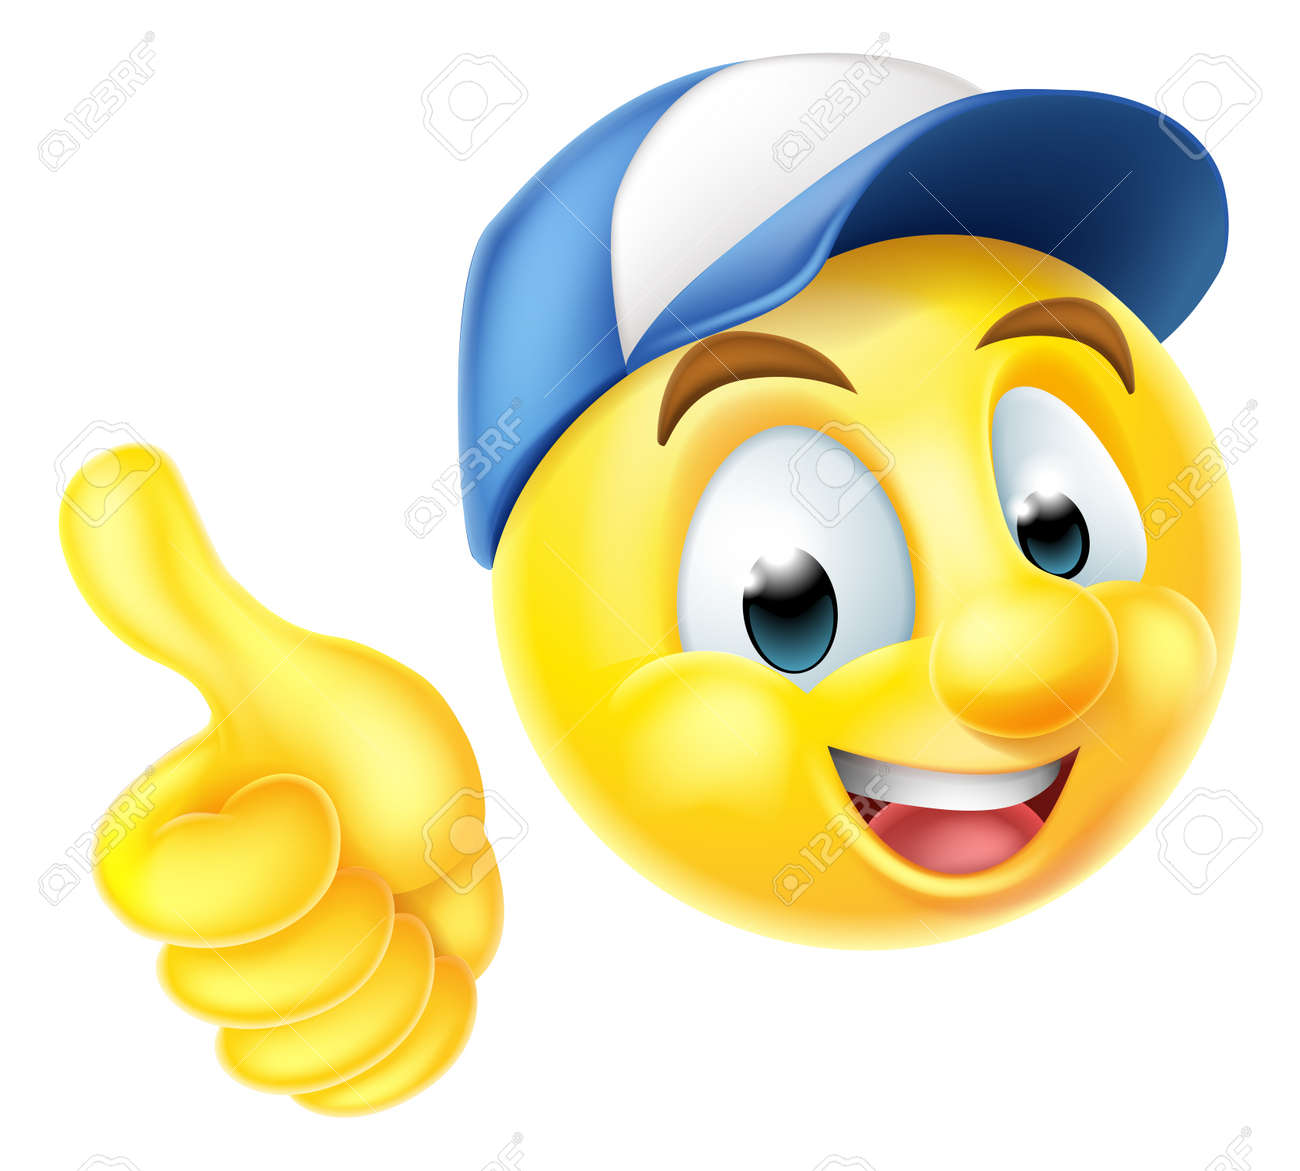 Smiley face stock photos royalty free smiley face images cartoon emoji emoticon smiley face character wearing a workers cap and giving a thumbs up voltagebd Image collections